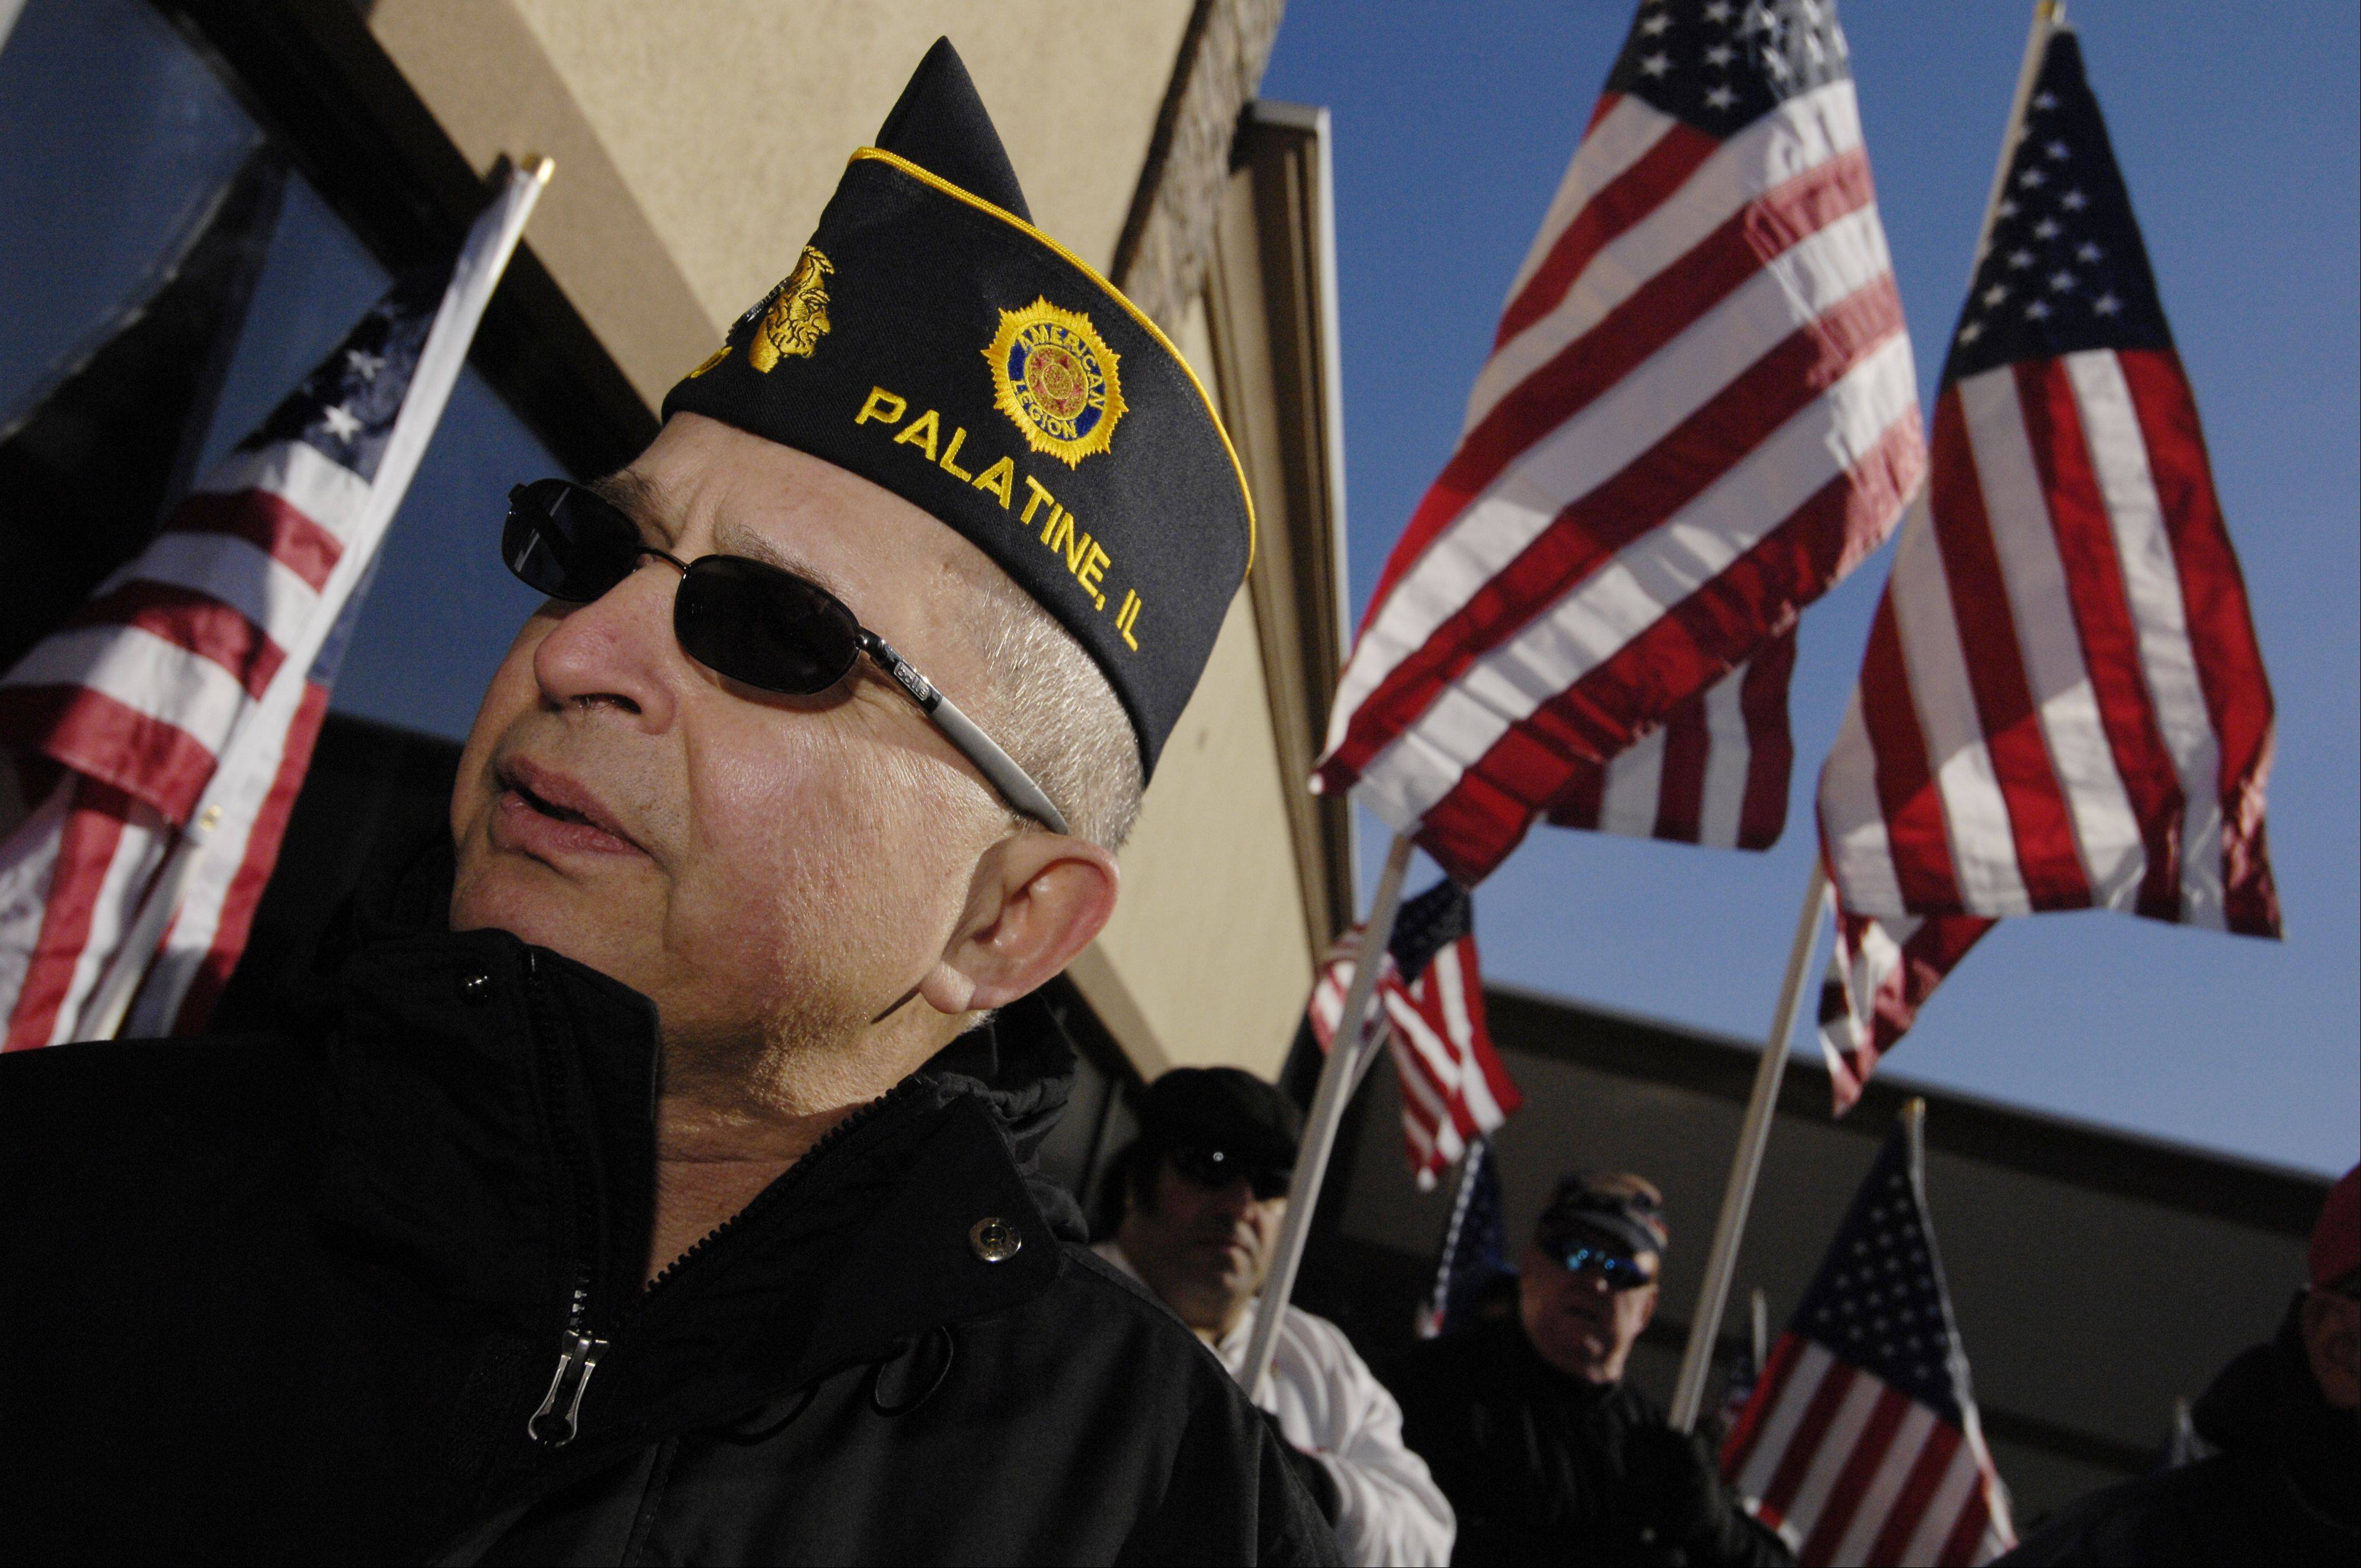 Roman Golash, a retired U.S. Army colonel who is now a member of Palatine American Legion Post 690, joins a rally Sunday in support of Glendale Heights VFW Post 2377.